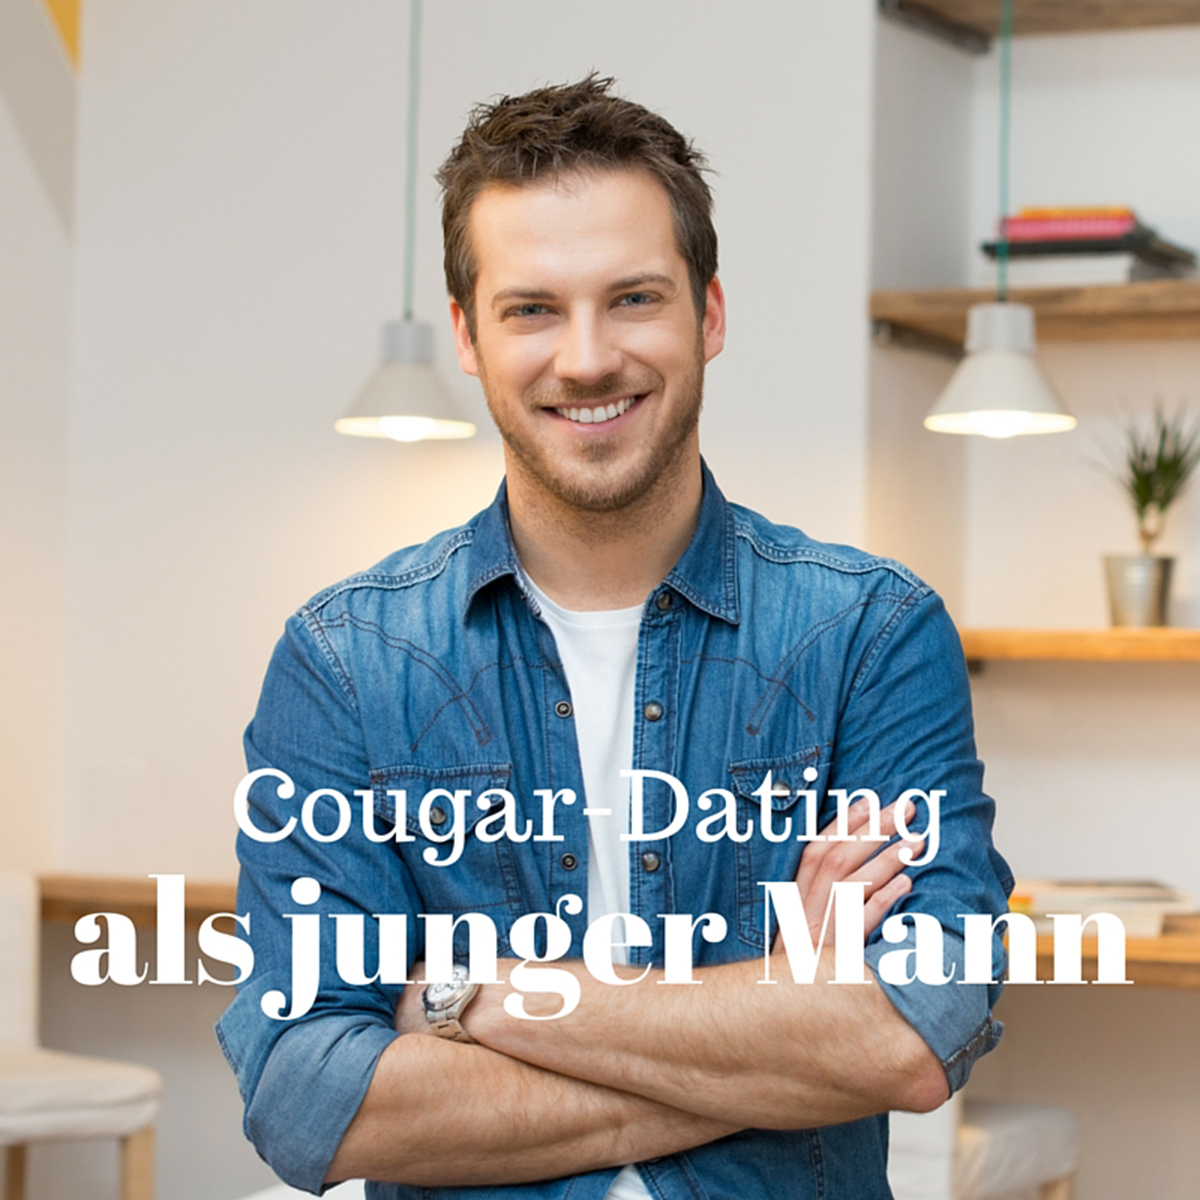 Cougar-Dating als Mann